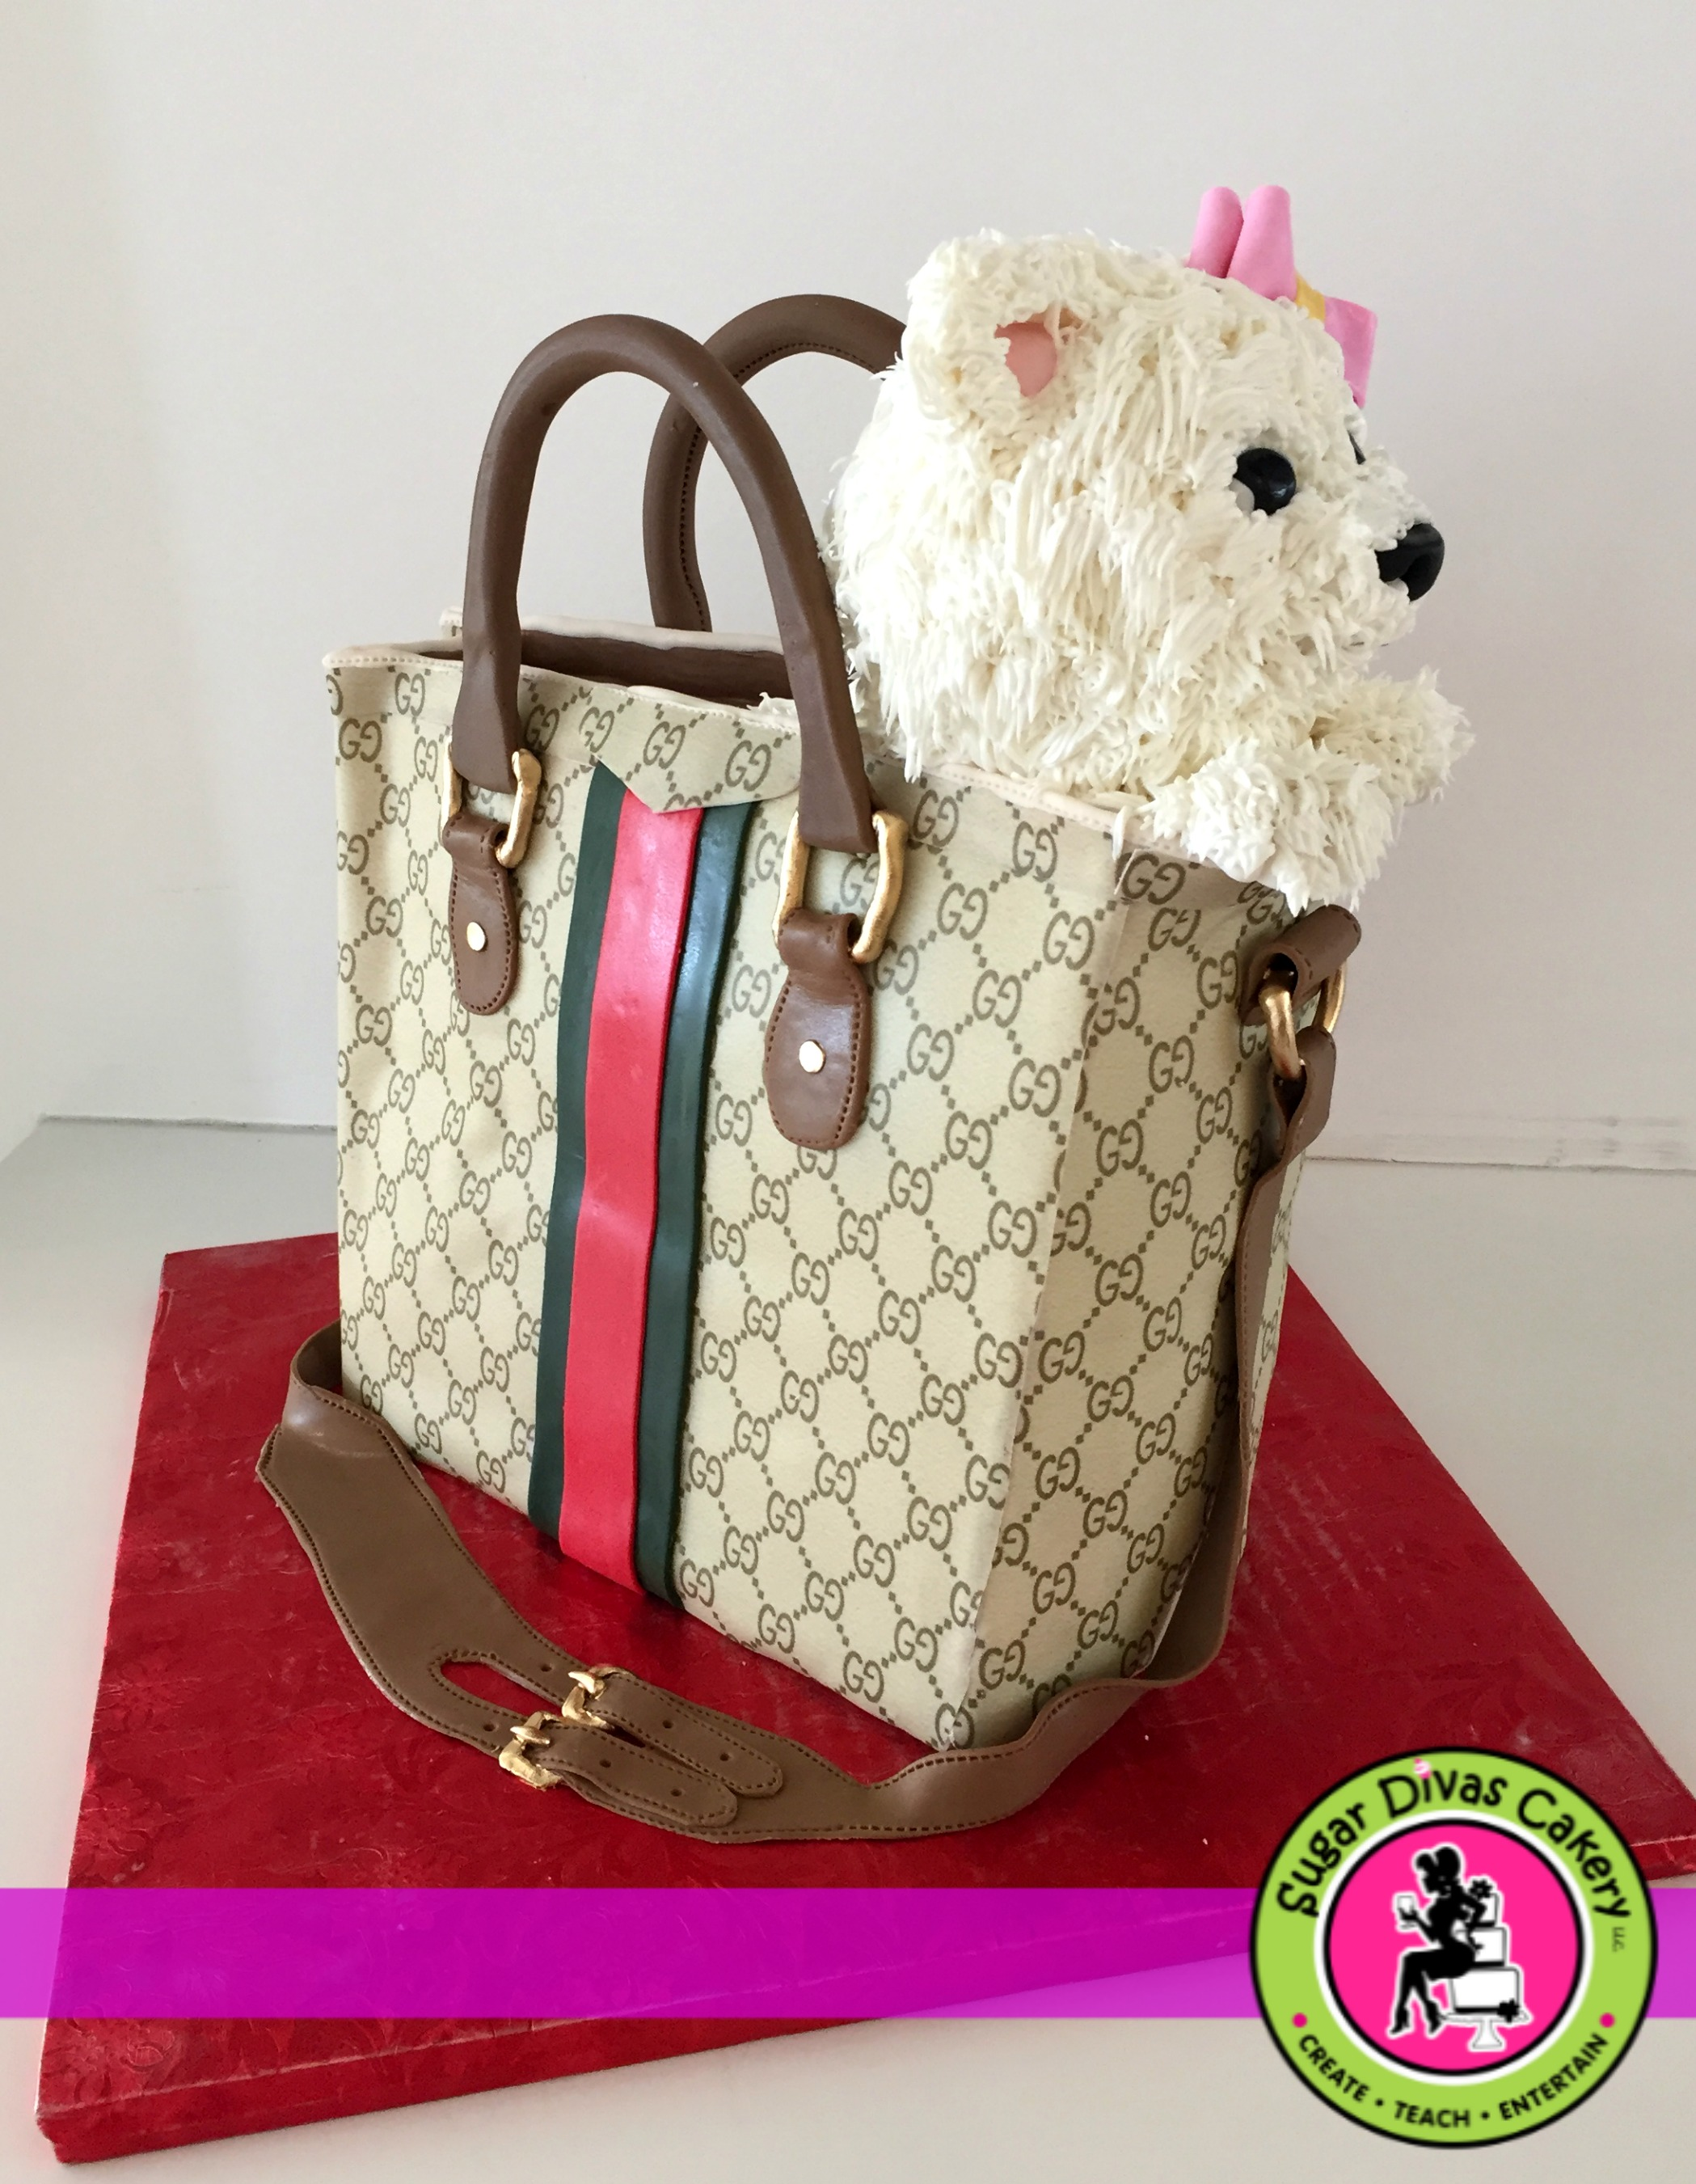 gucci bag with dog